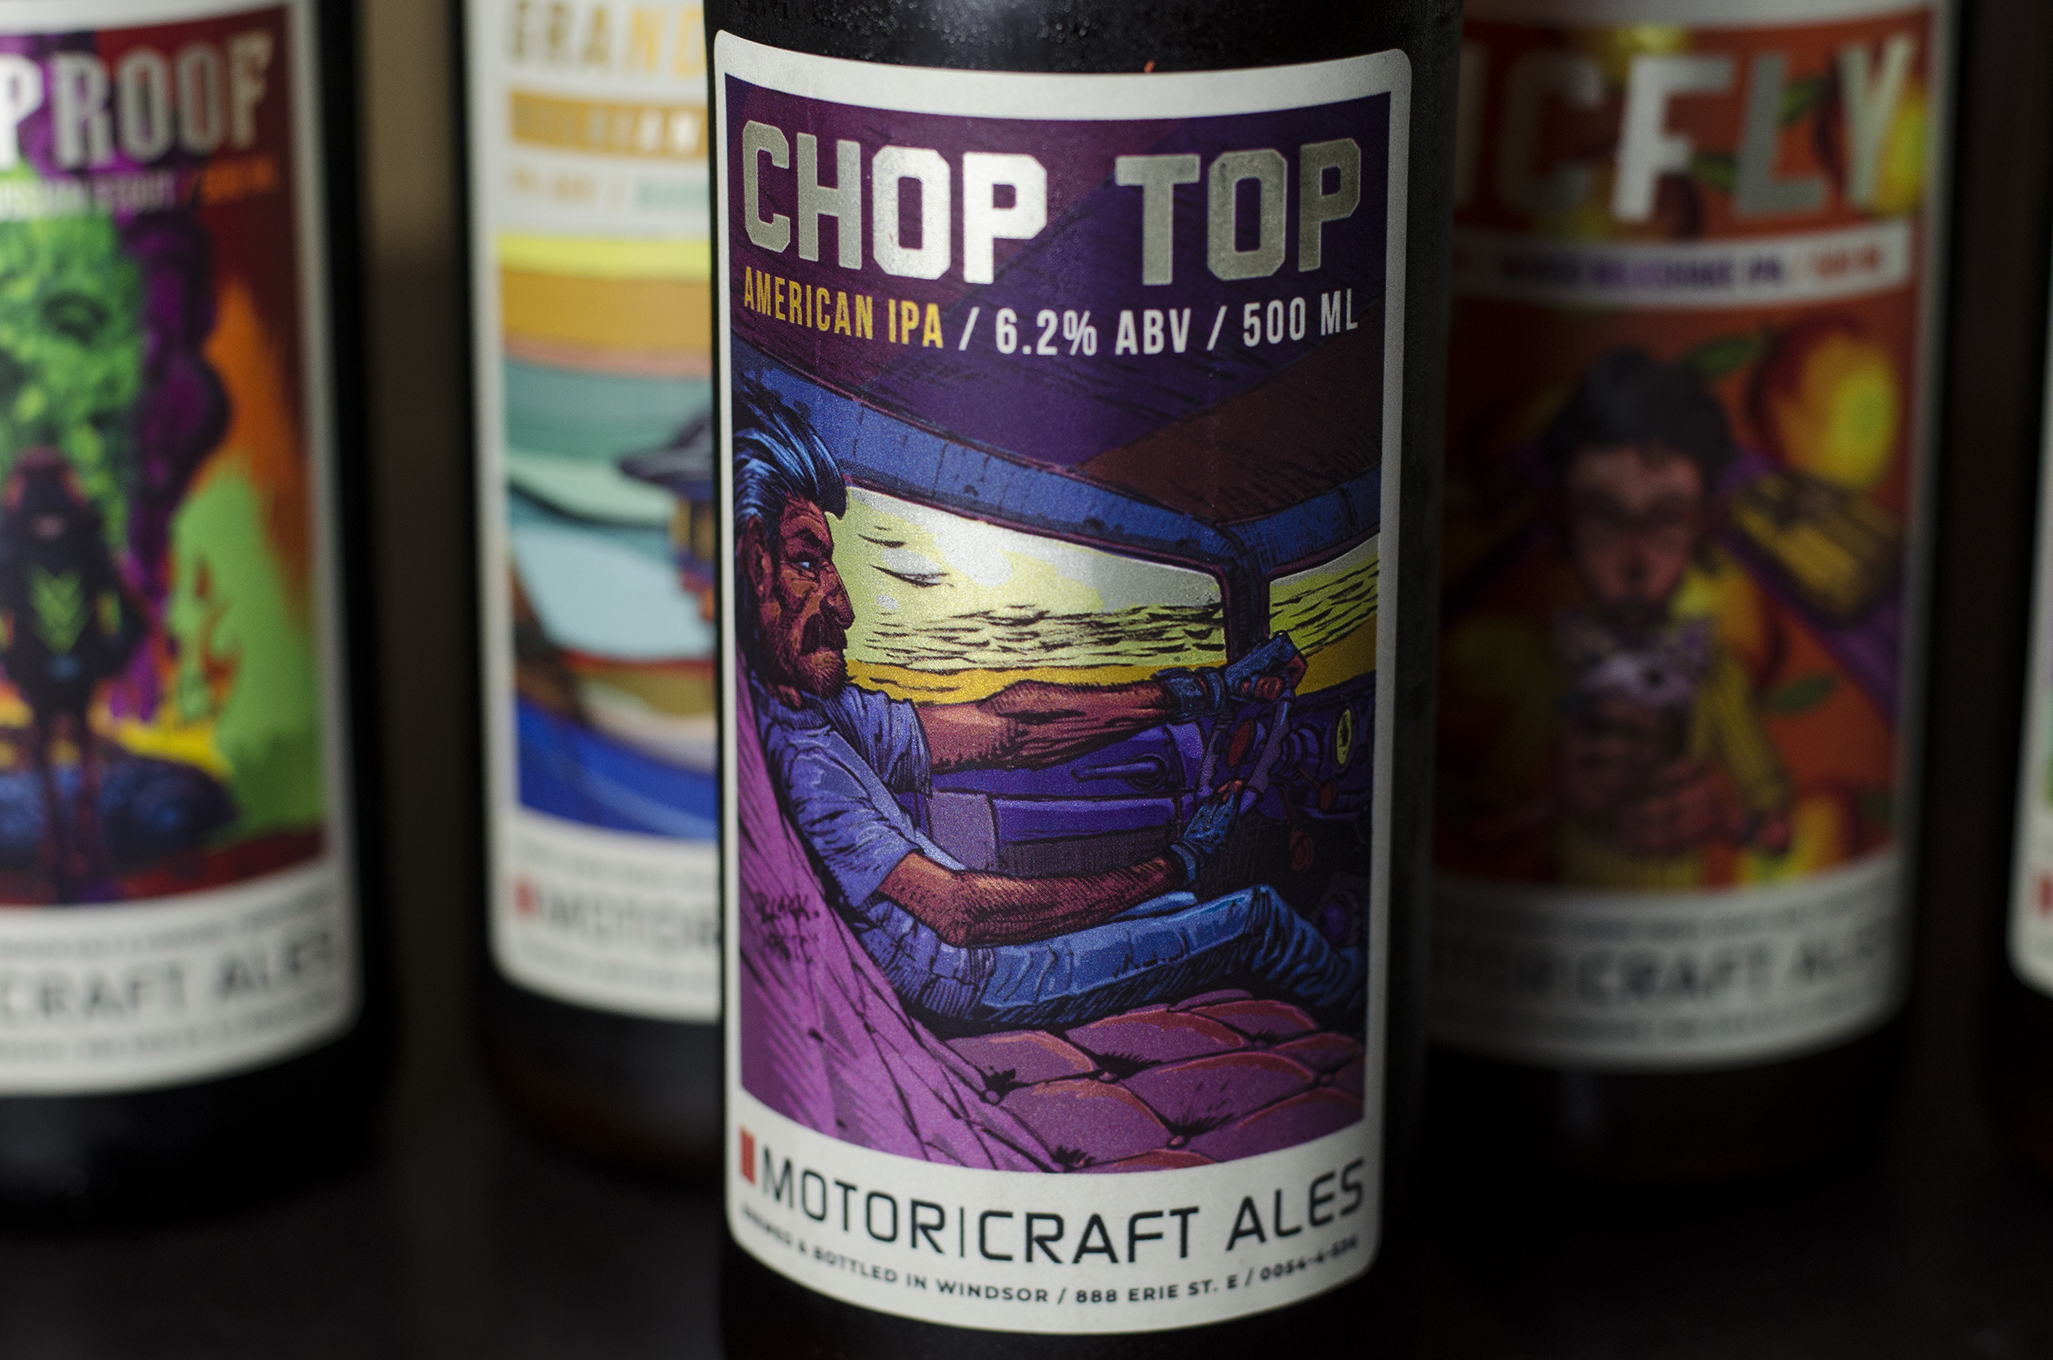 Chop Top from Motor Craft Ales in Windsor, Ontario.